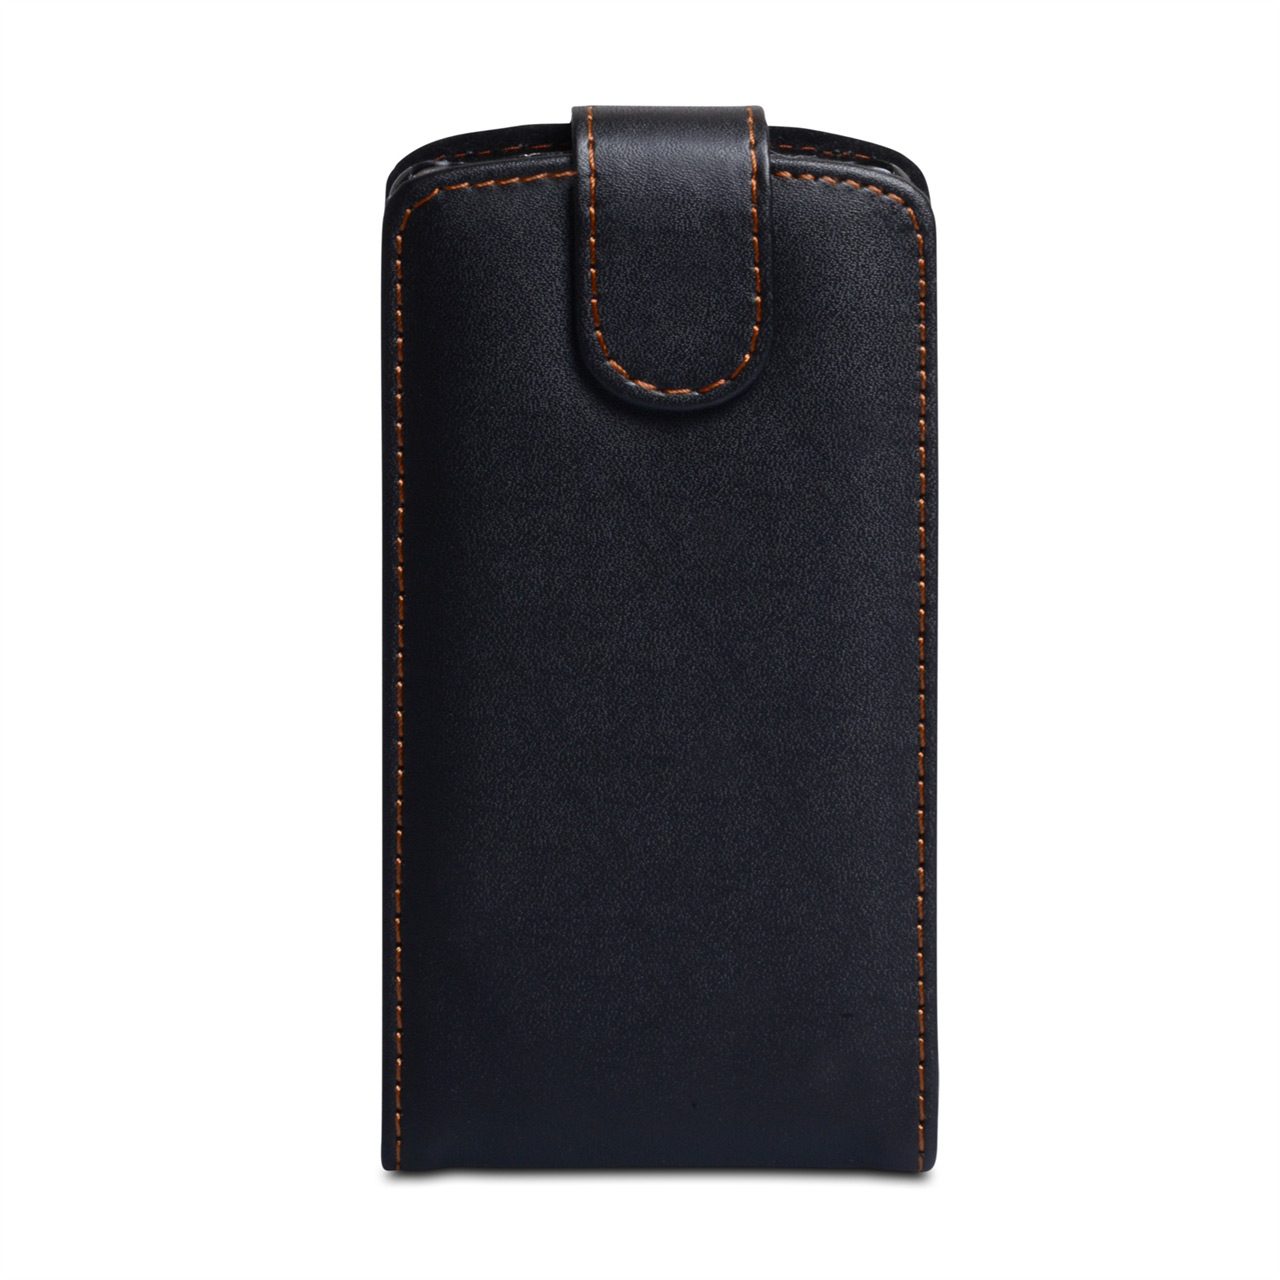 YouSave Accessories Huawei Ascend P6 Leather-Effect Flip Case - Black